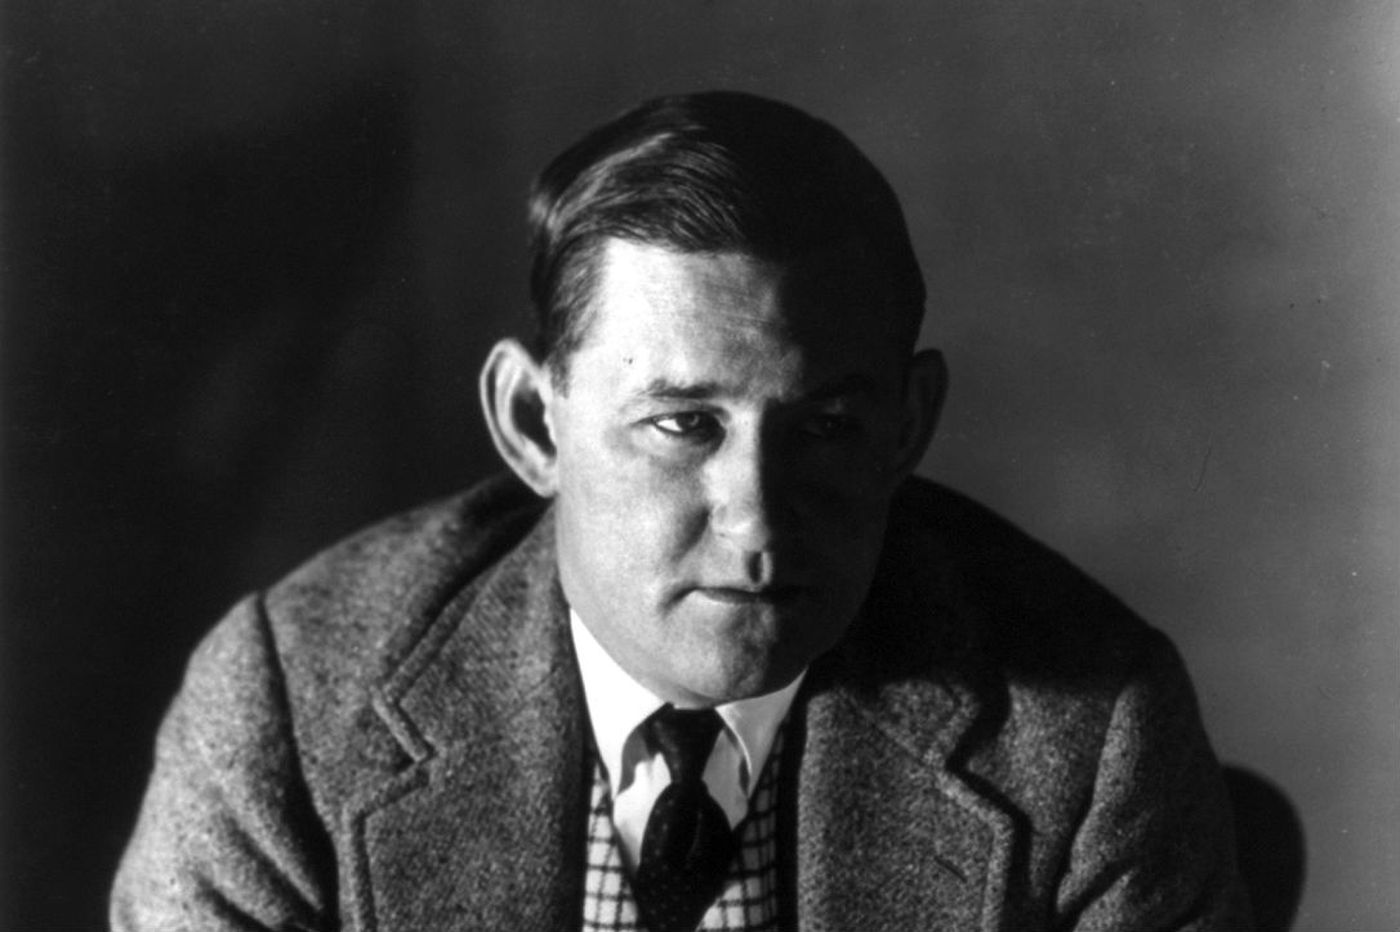 John O'Hara's 'Stories': Much-needed collection of local novelist's fiction